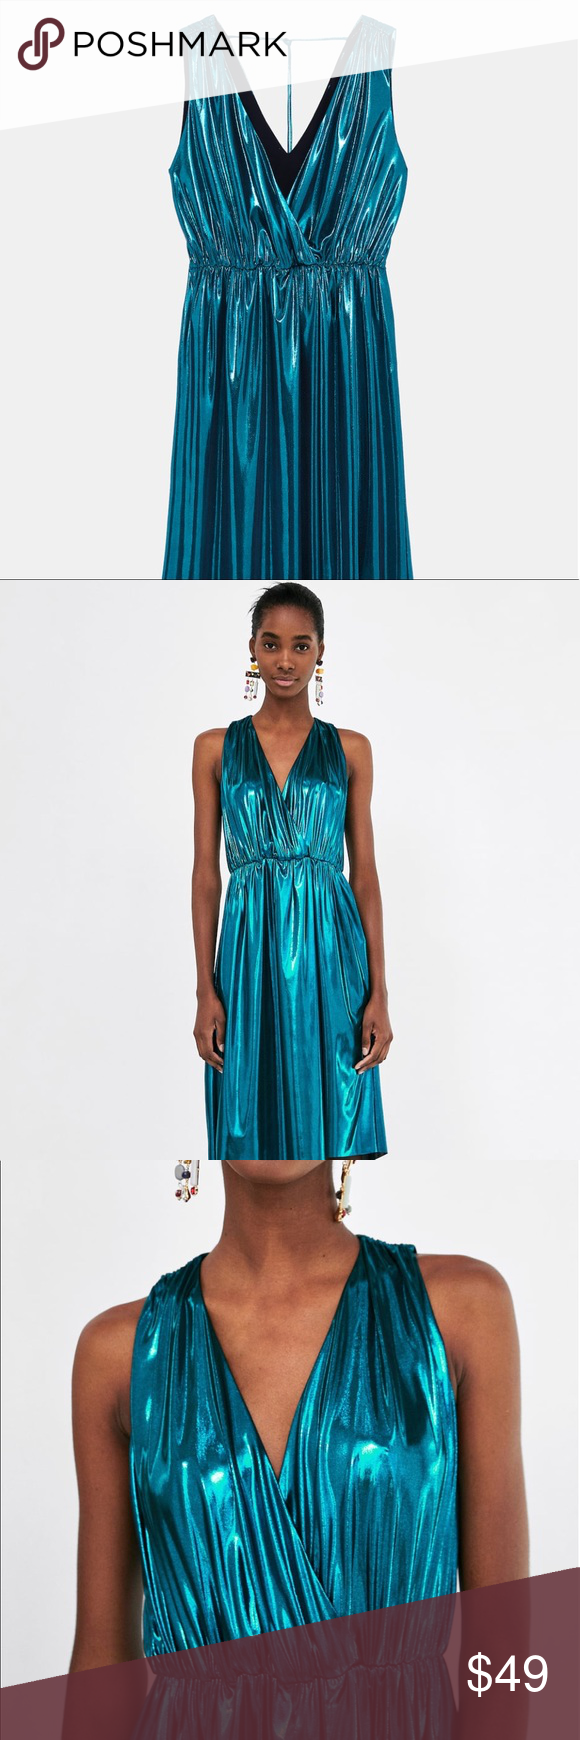 db158847 Zara Metallic Flowing Dress - NWT Sleeveless flowing dress with a  V-neckline and gathering